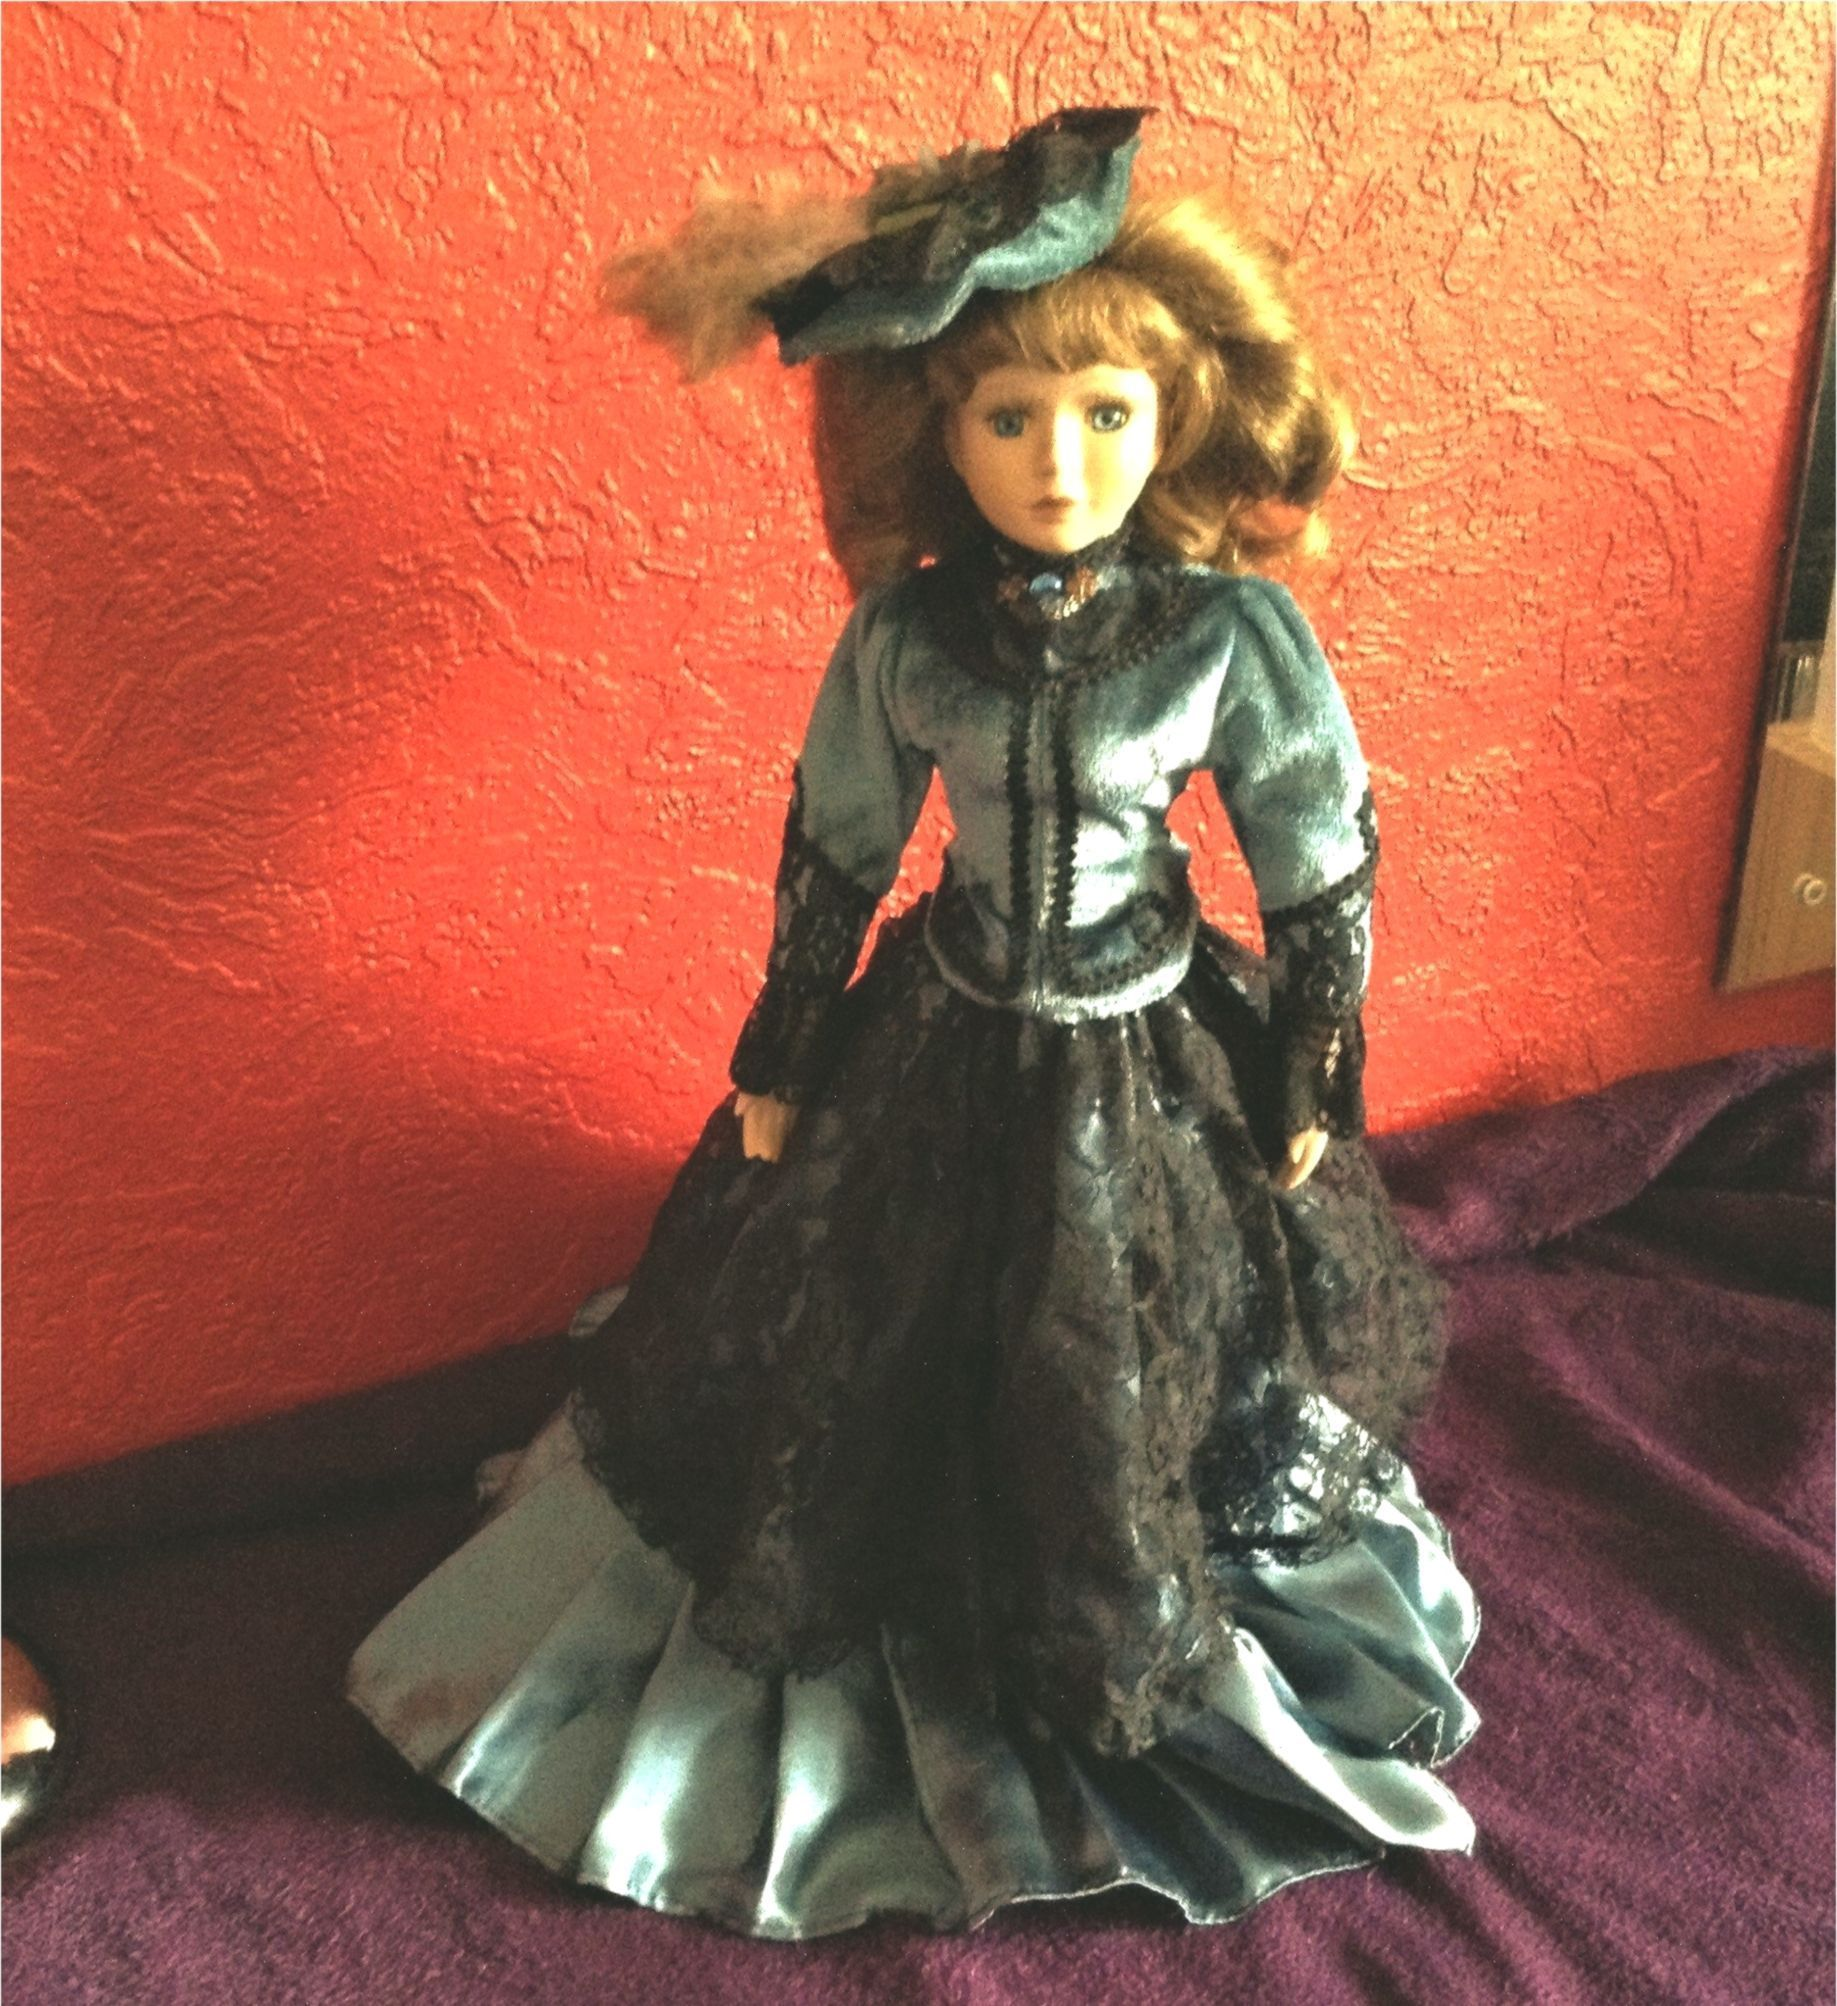 Doll Victorian Gothic vintage style on stand 18 inches high display doll collect… #GruseligePuppe #creepydolldisplay #doll #dollvictoriandressstyles Doll Victorian Gothic vintage style on stand 18 inches high display doll collect… #GruseligePuppe #creepydolldisplay #doll #dollvictoriandressstyles Doll Victorian Gothic vintage style on stand 18 inches high display doll collect… #GruseligePuppe #creepydolldisplay #doll #dollvictoriandressstyles Doll Victorian Gothic vintage style on stand 18 #dollvictoriandressstyles